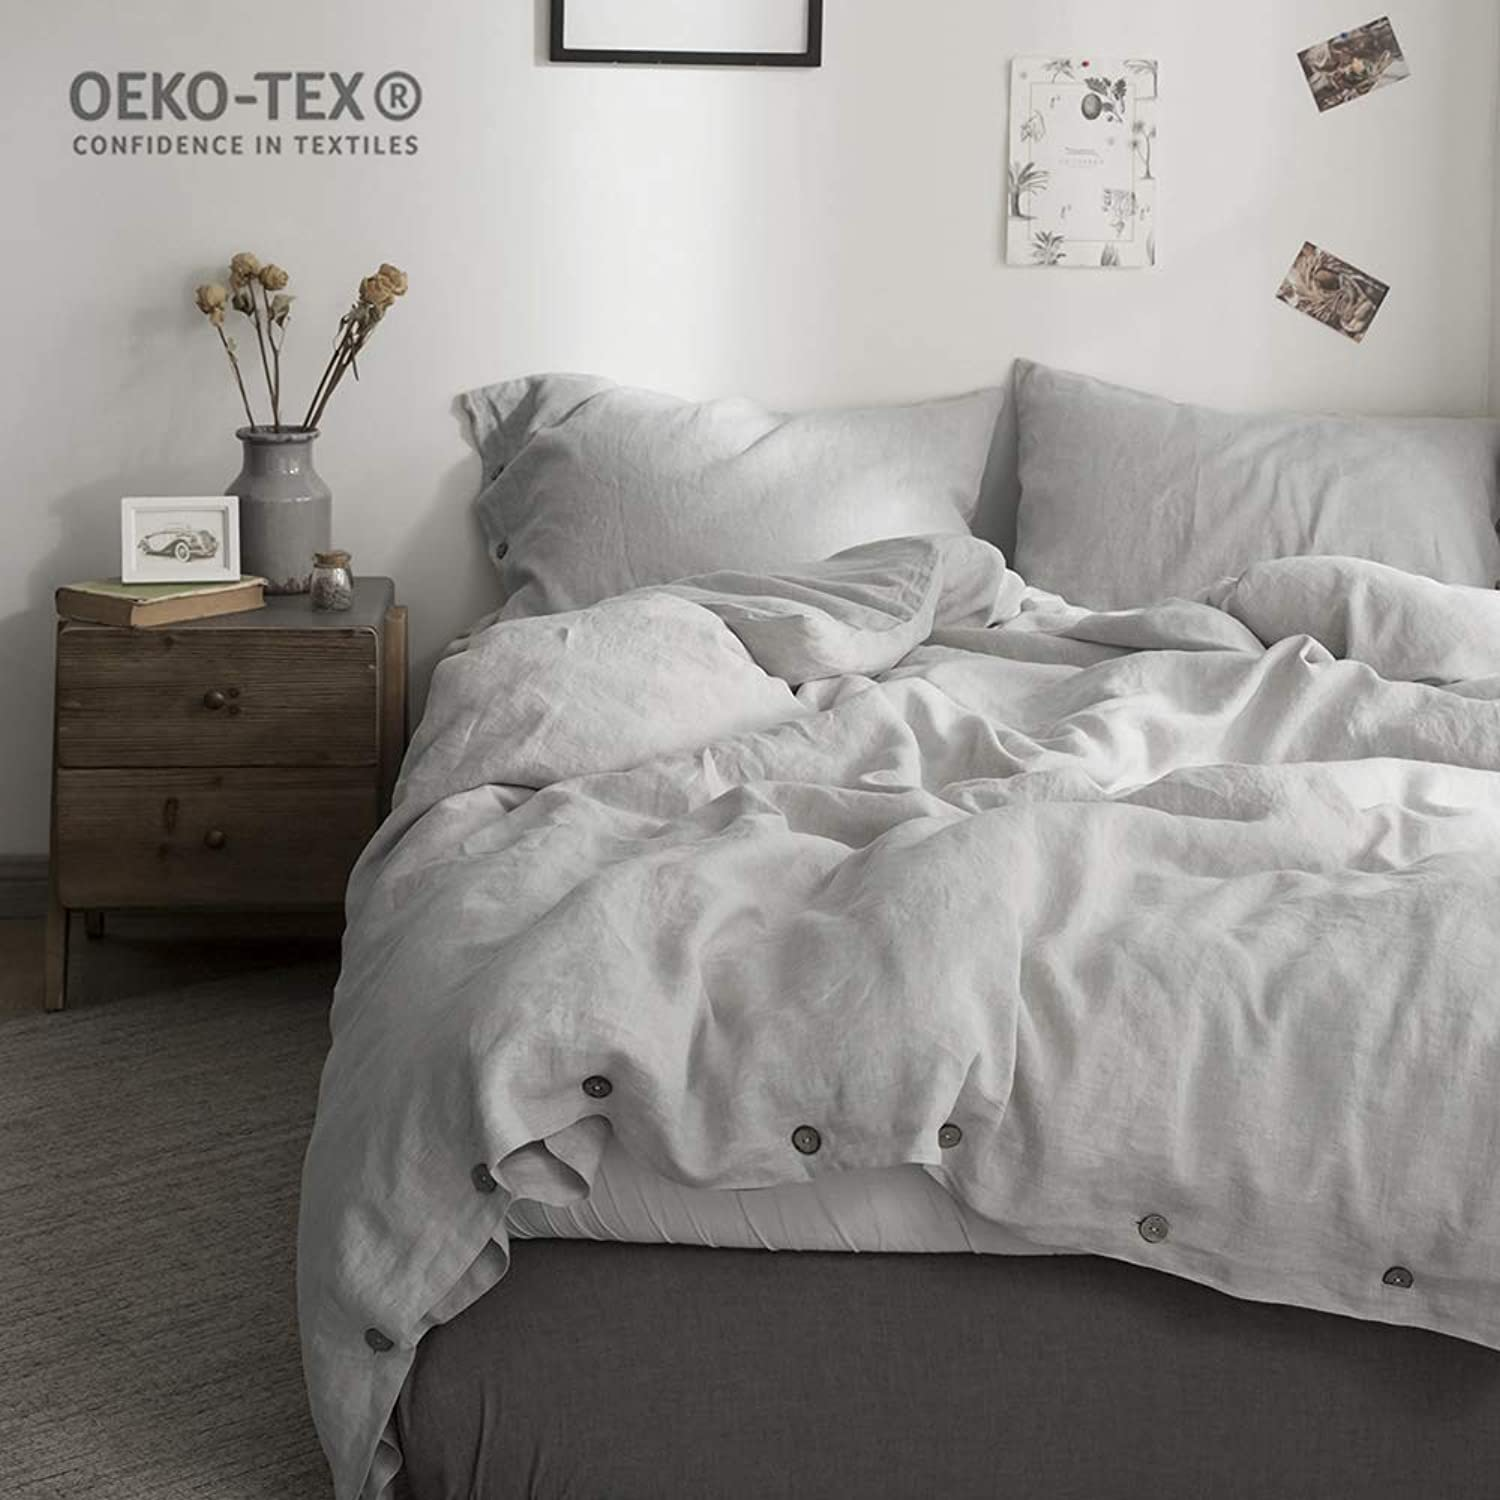 Simple&Opulence 100% Washed Linen Coconut Wood Deduction Solid Grey Bedding Set with 1 Duvet Cover 1 Pillowcase (Twin, Light Grey)